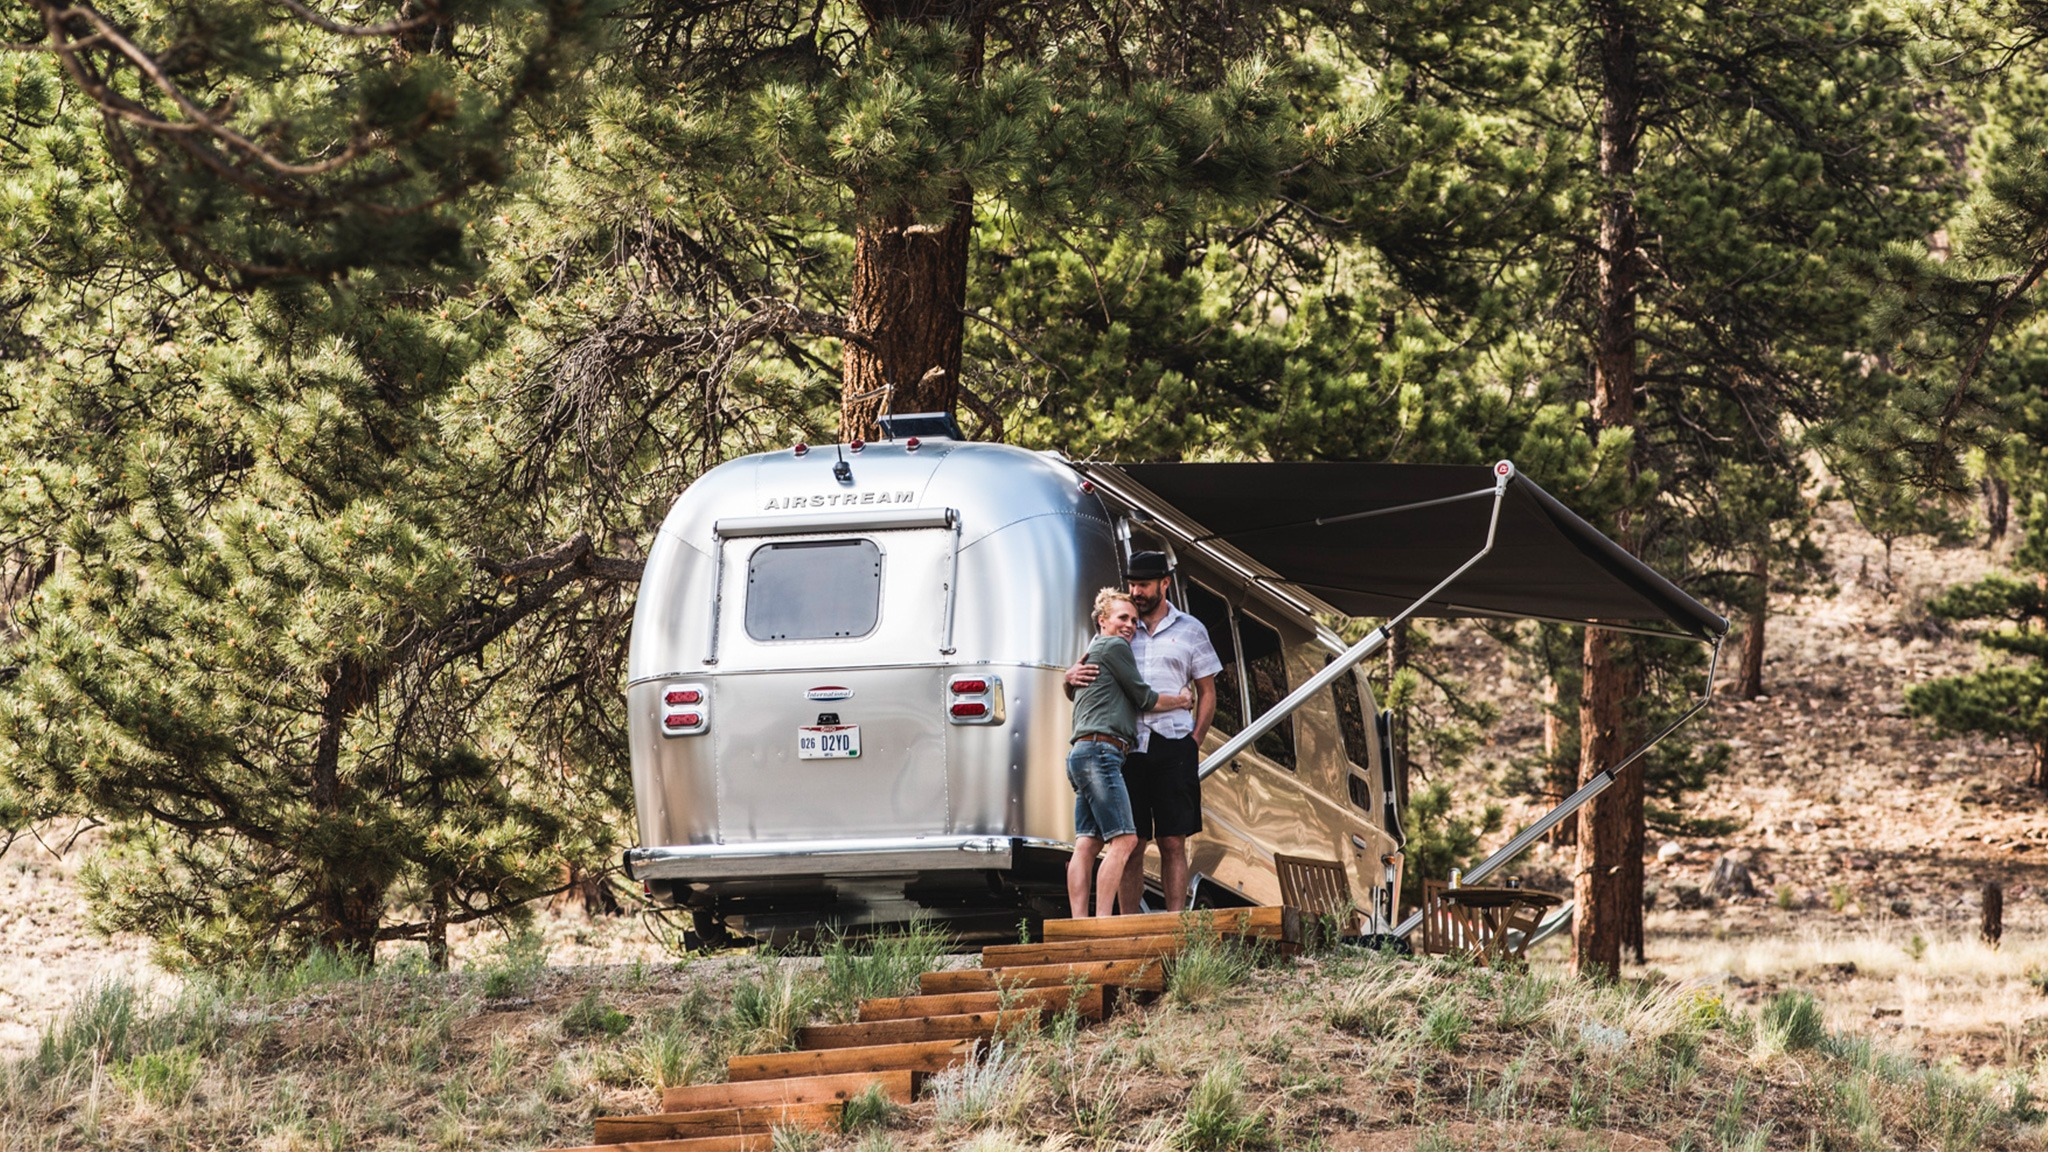 9 Reasons You Don't Want an RV (unless it's an Airstream)